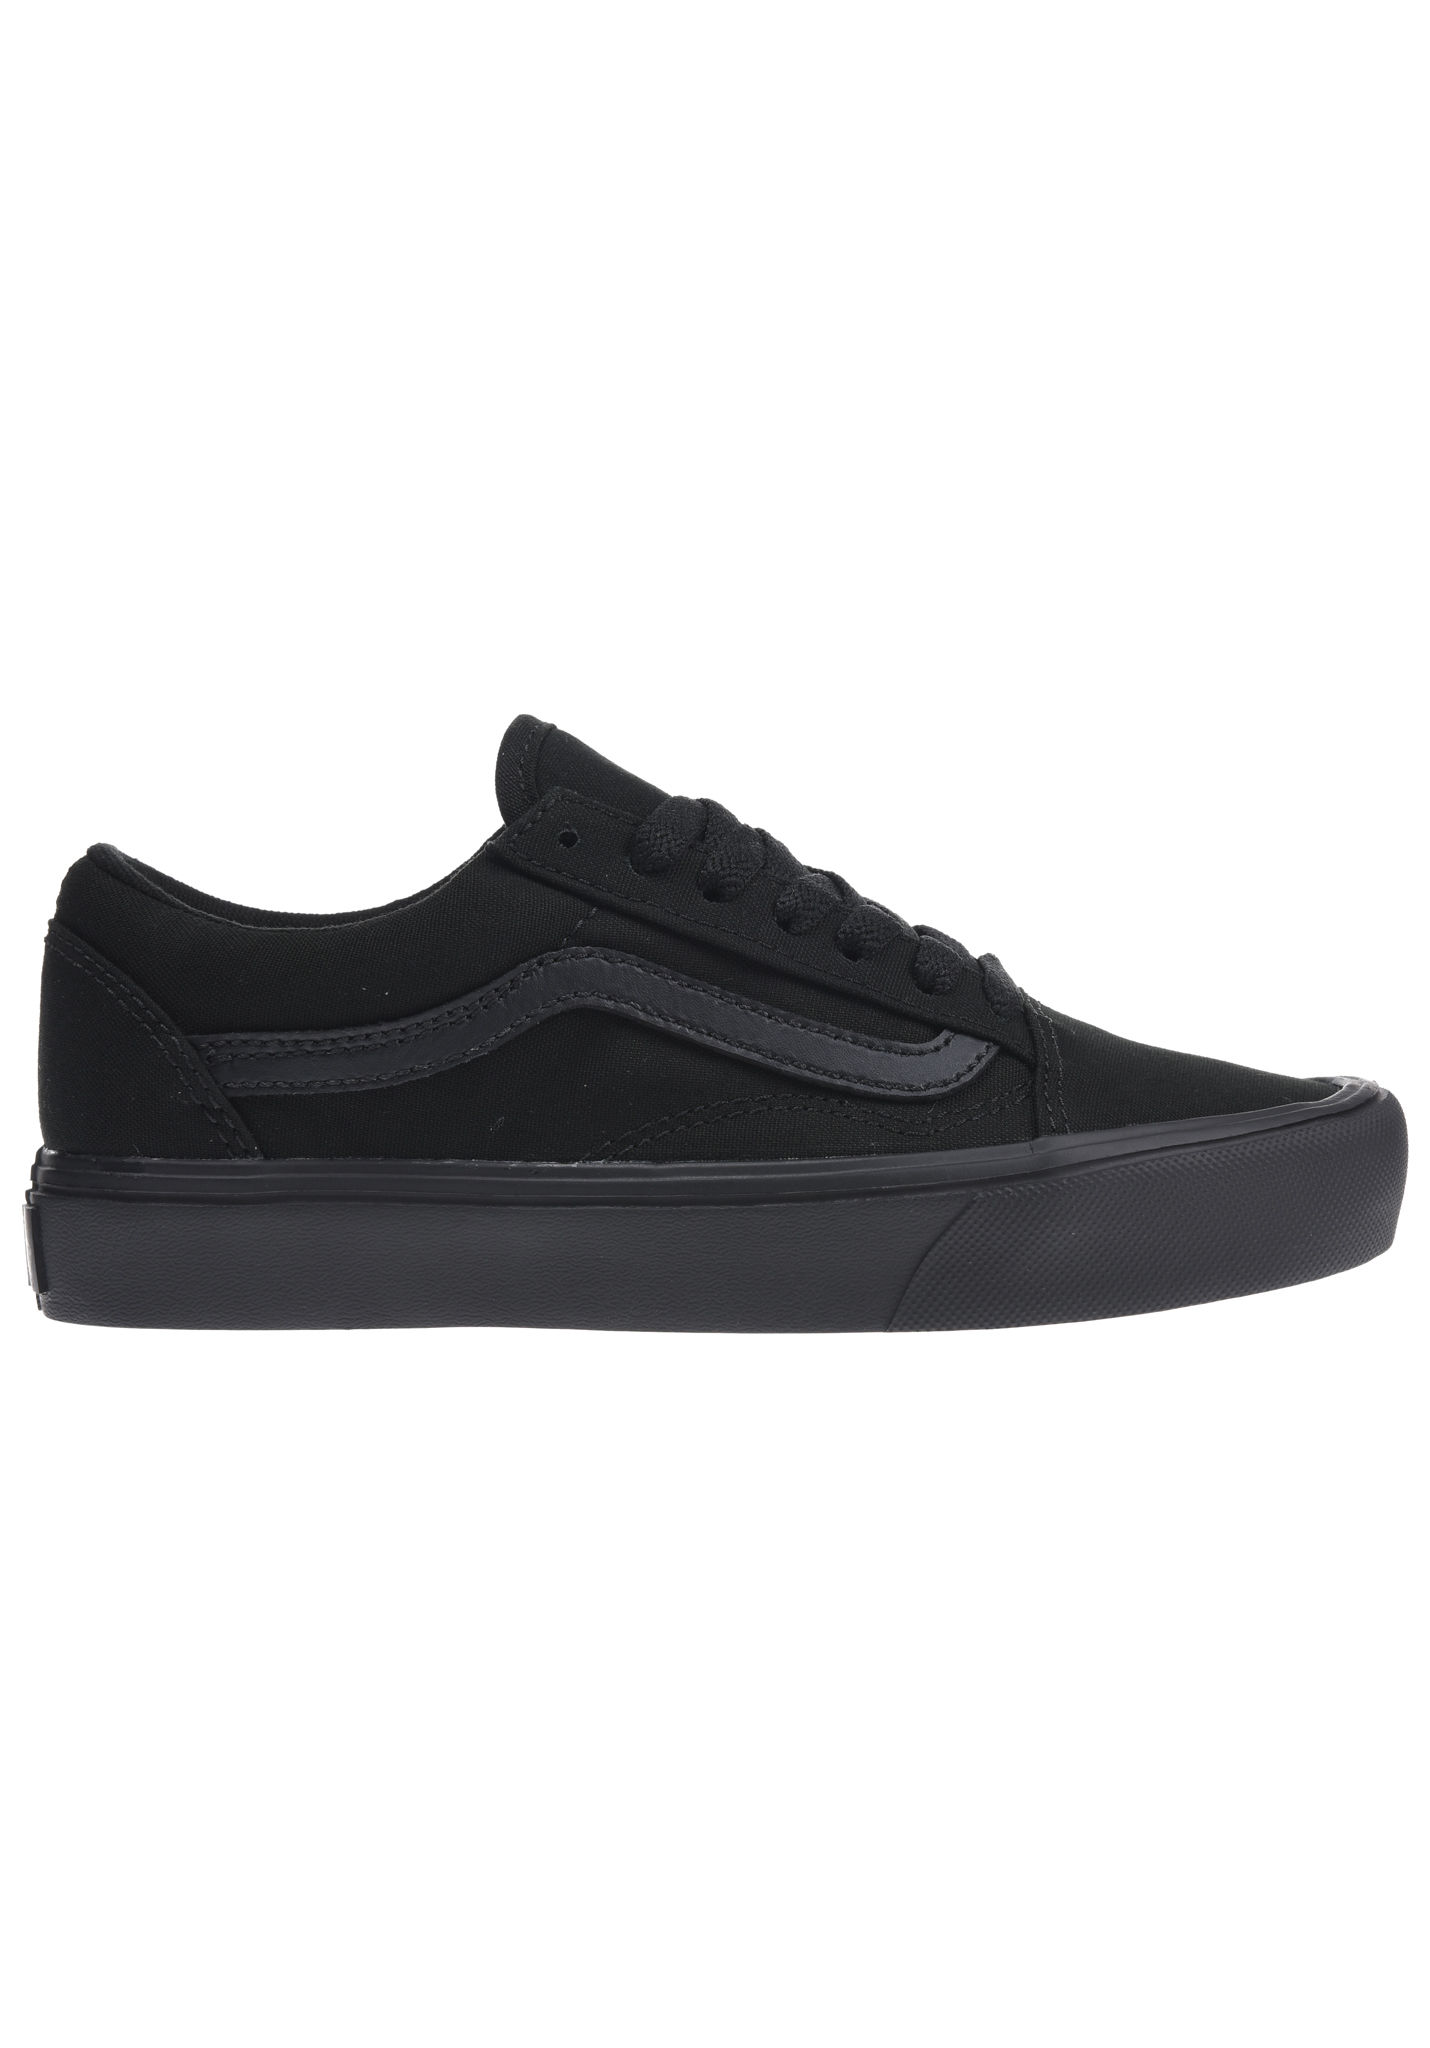 3eea103543 Vans Old Skool Lite - Sneakers - Black - Planet Sports